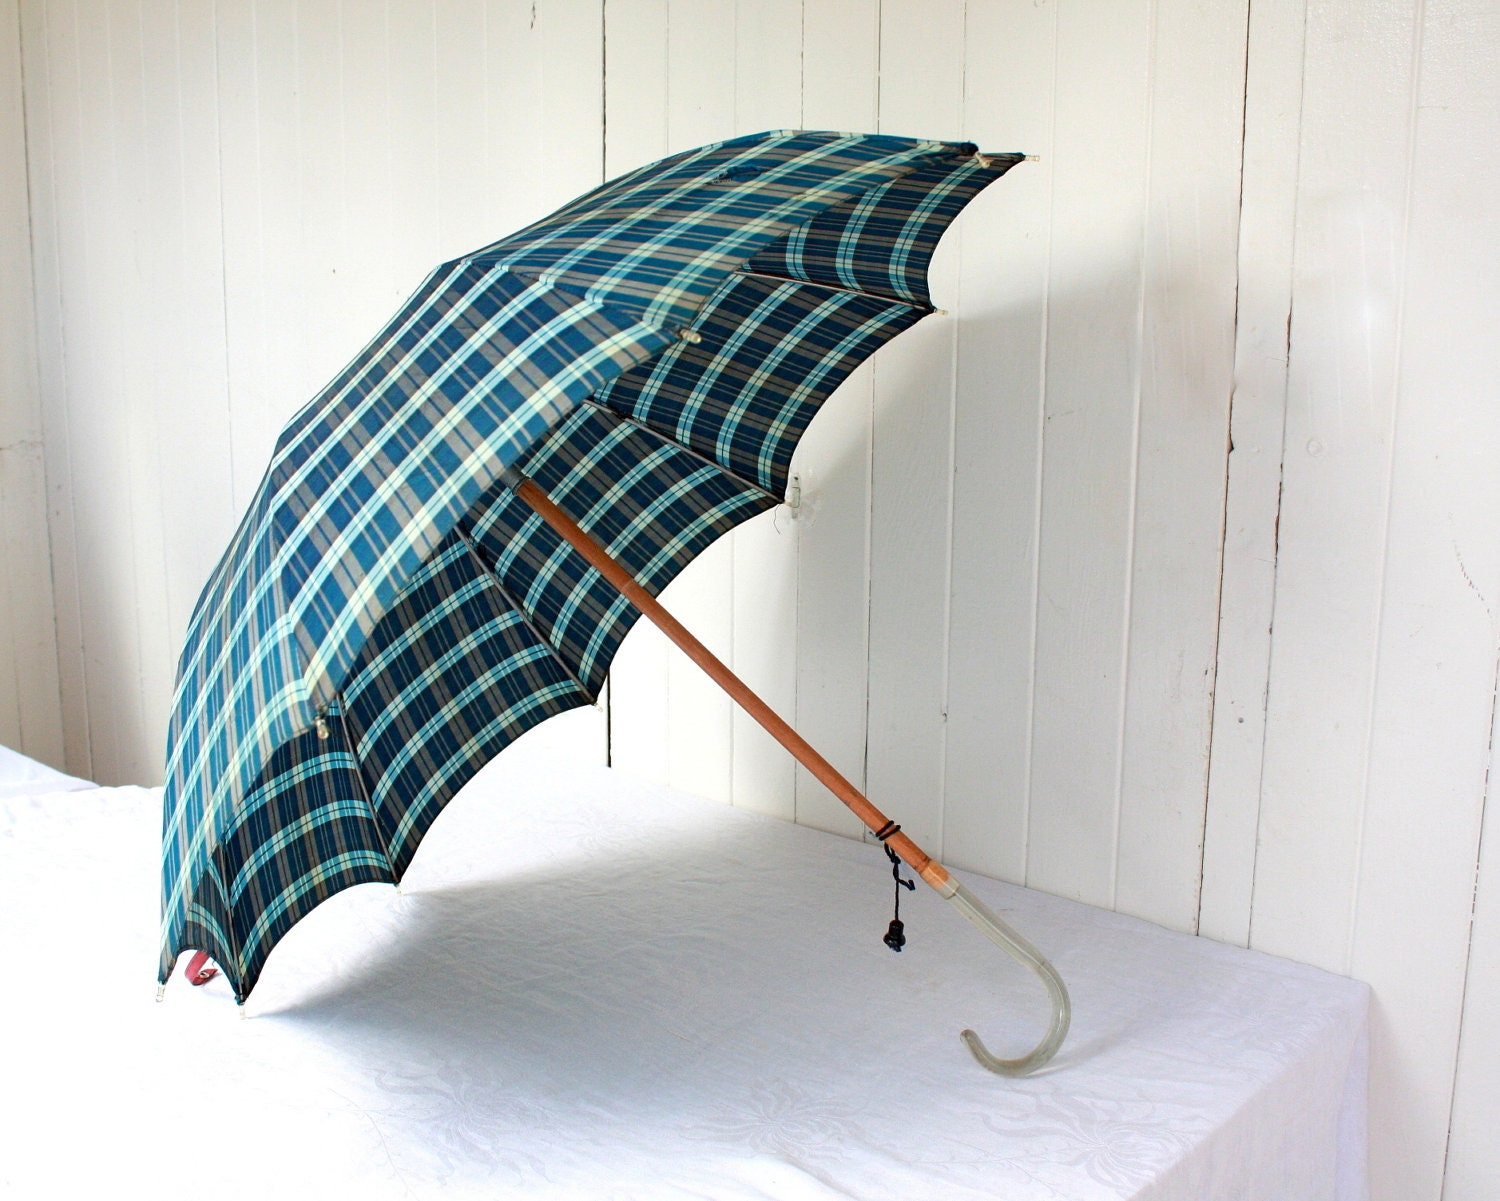 Vintage Umbrella with Lucite Handle, Blue Plaid Umbrella, Vintage Accessories, Fall, Winter - SummerHolidayVintage